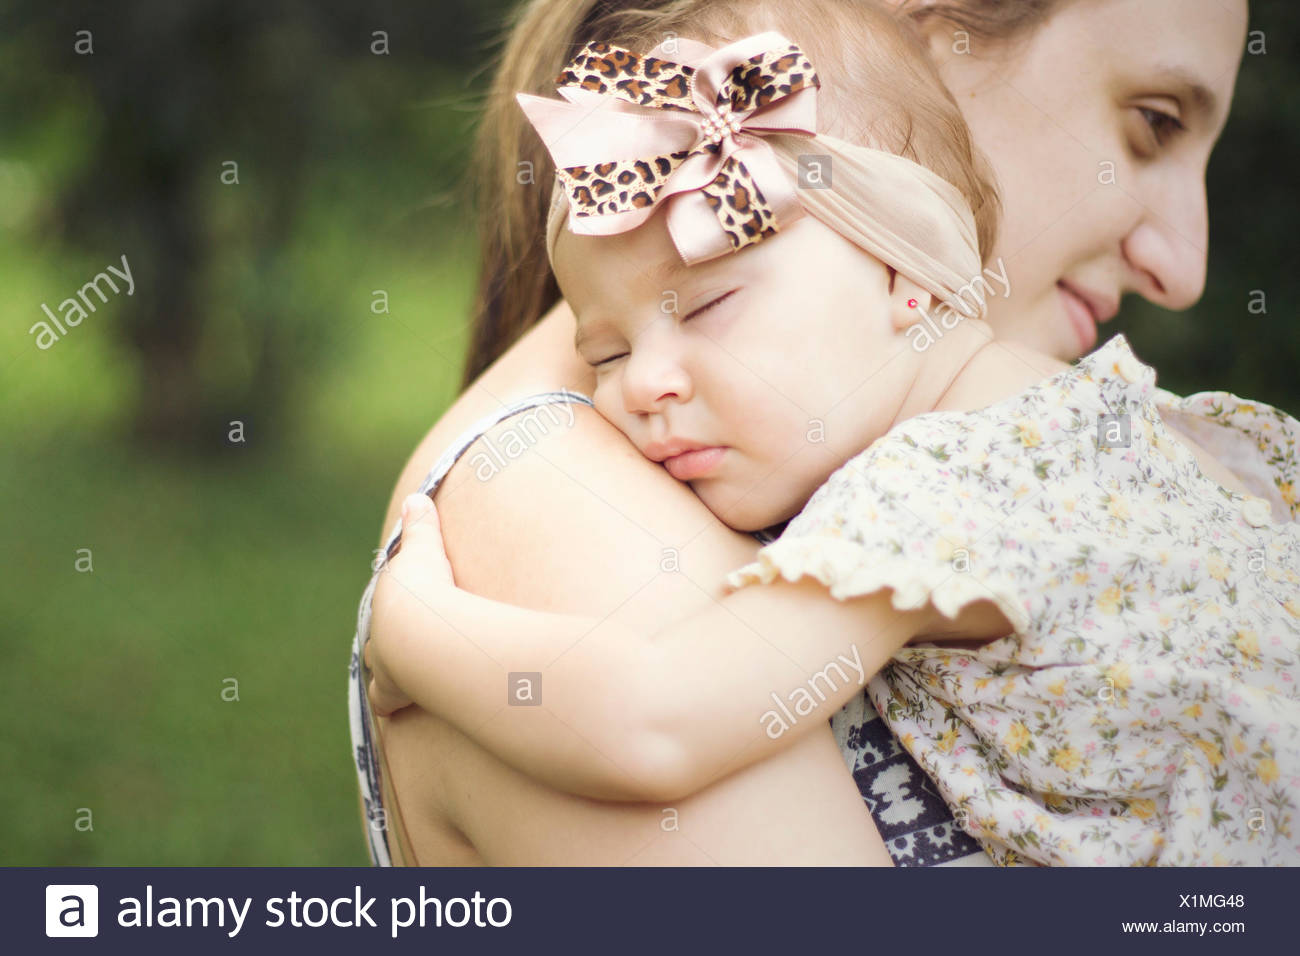 Close-Up Side View Of A Mother Carrying Baby Outdoors - Stock Image